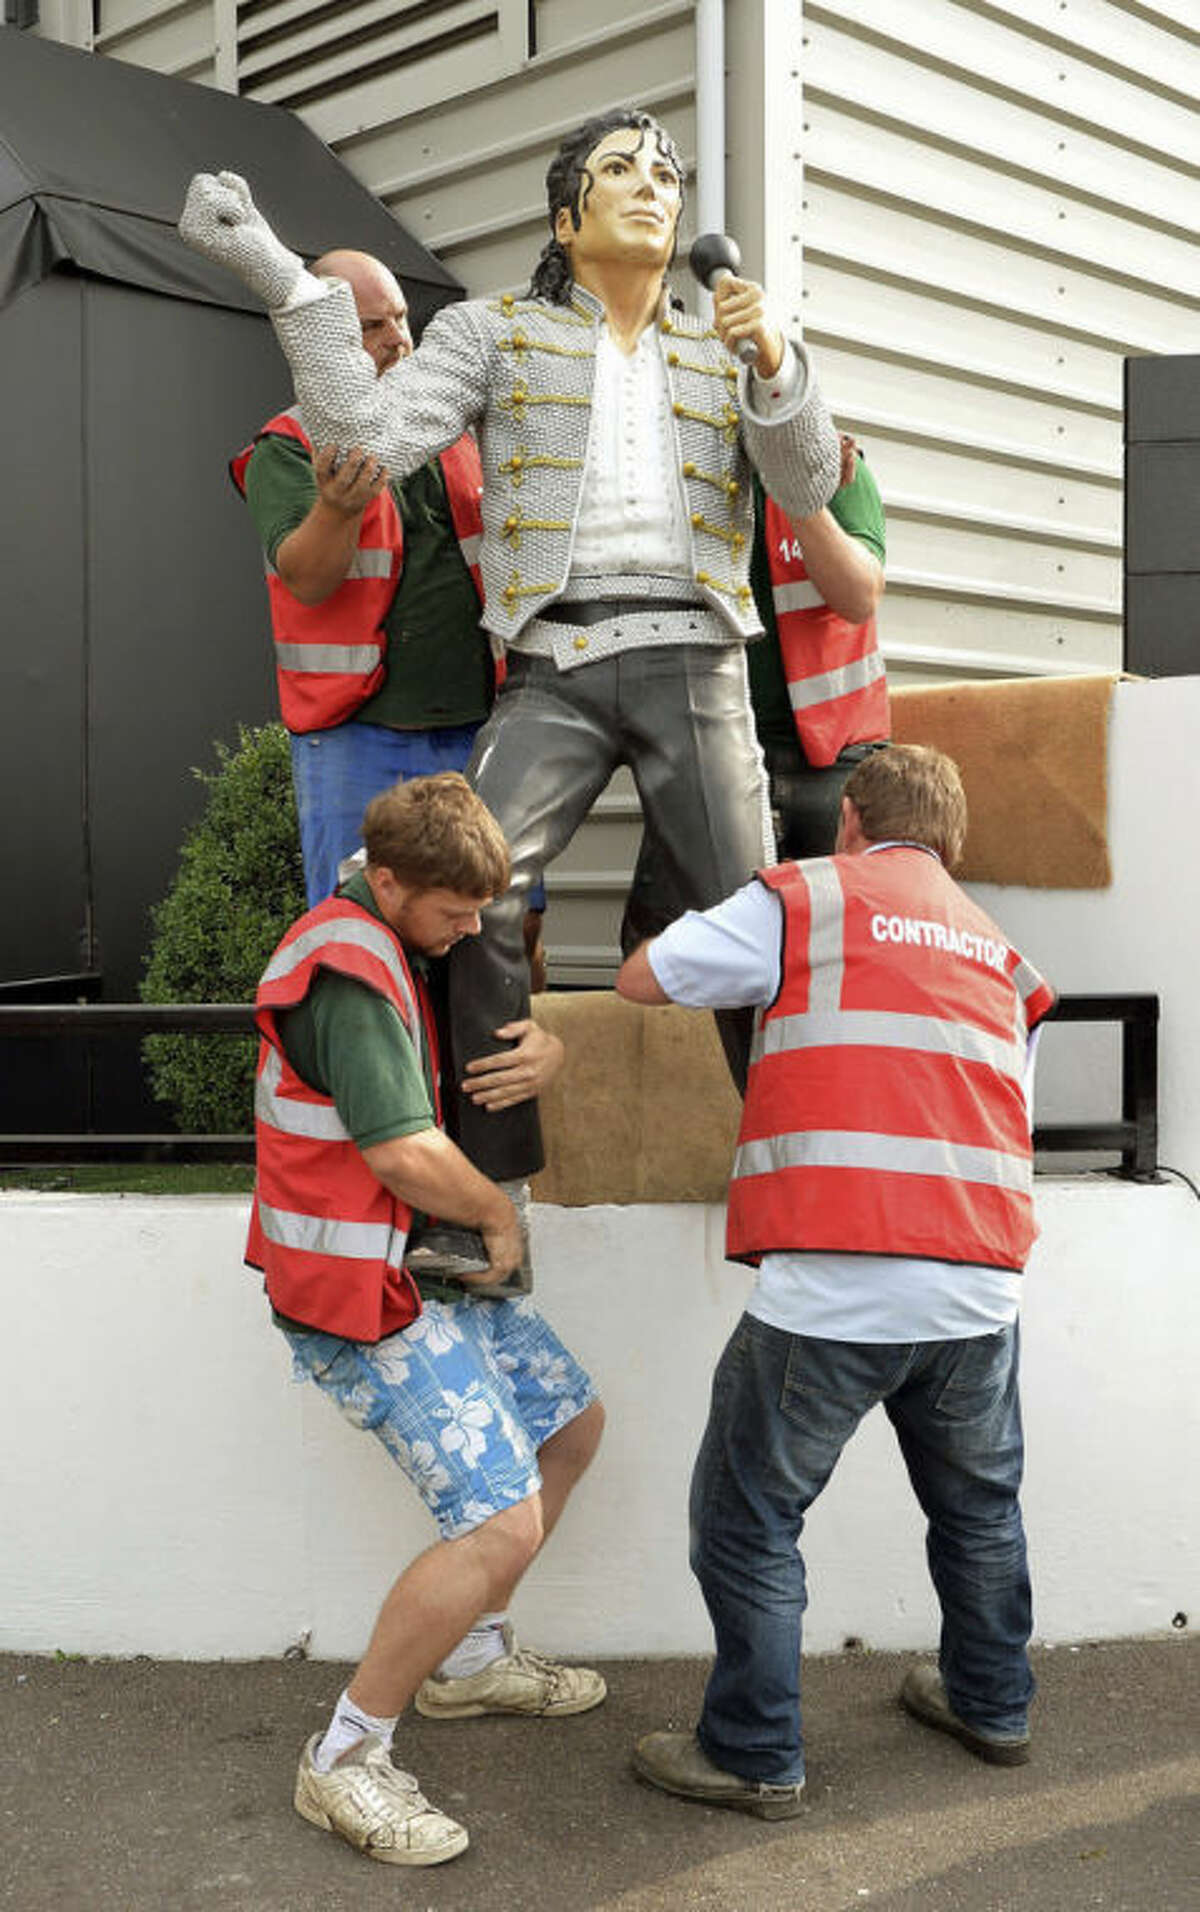 A group of stonemasons remove the statue of US performer Michael Jackson, that was erected by previous owner Mohammed al Fayed, on the north west corner of Fulham Football Club, in London, Wednesday Sept. 25, 2013. The controversial Michael Jackson statue which has stood outside Fulham's Craven Cottage ground for over two years was removed on Wednesday. Al Fayed sold the west London club to Shahid Khan in July and, after consulting with supporters, the American businessman decided to pull the 7ft 6in statue down. (AP Photo/PA, John Stillwell) UNITED KINGDOM OUT NO SALES NO ARCHIVE